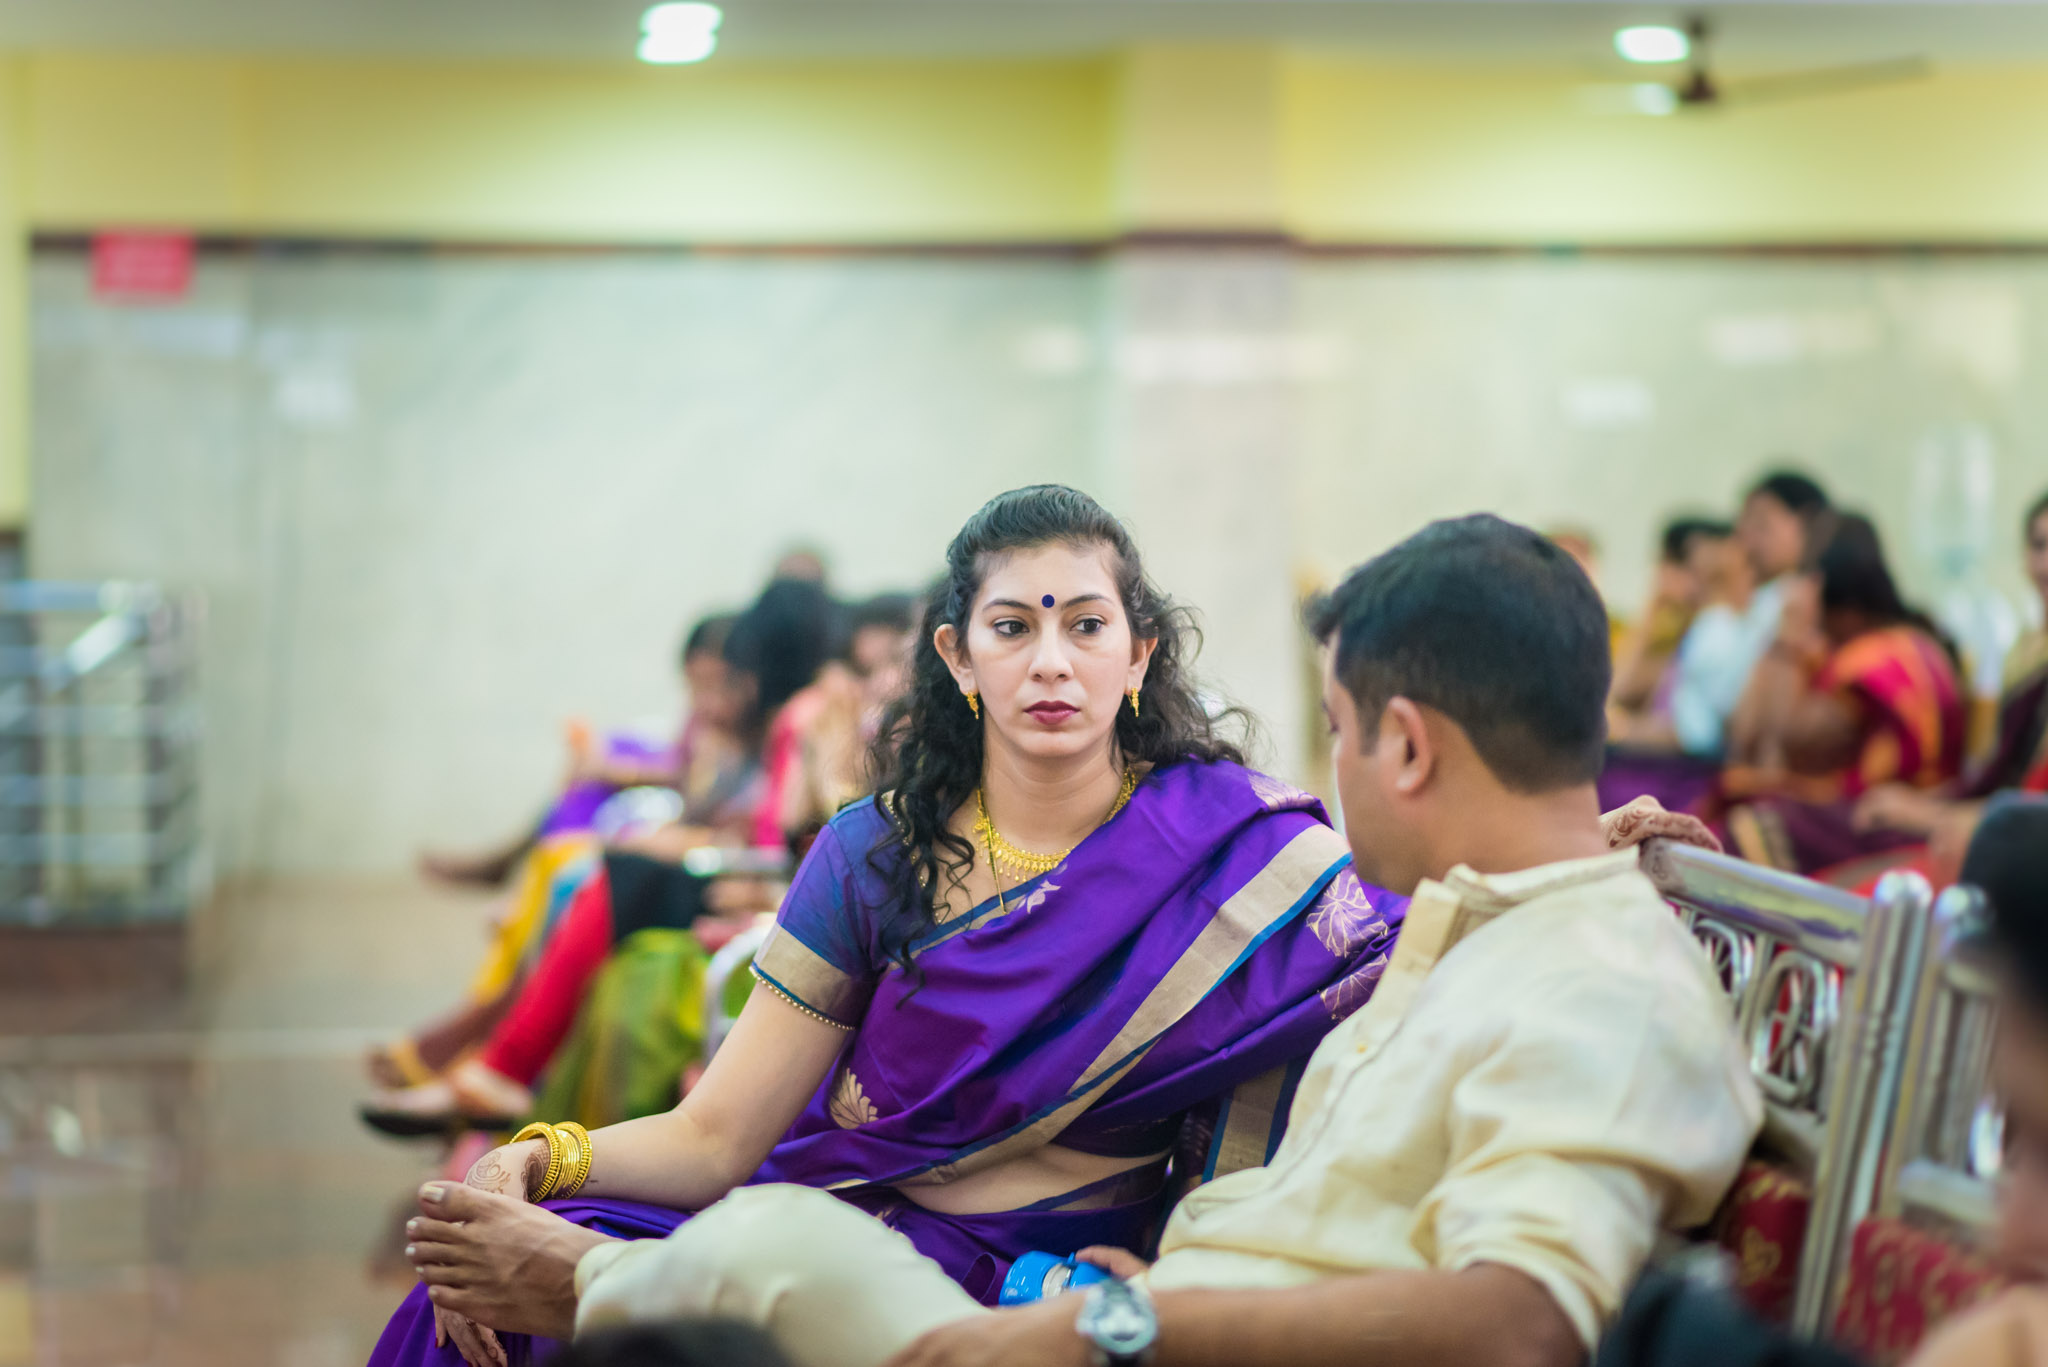 WhatKnot-Candid-Wedding-Photography-Mumbai-Bangalore-54